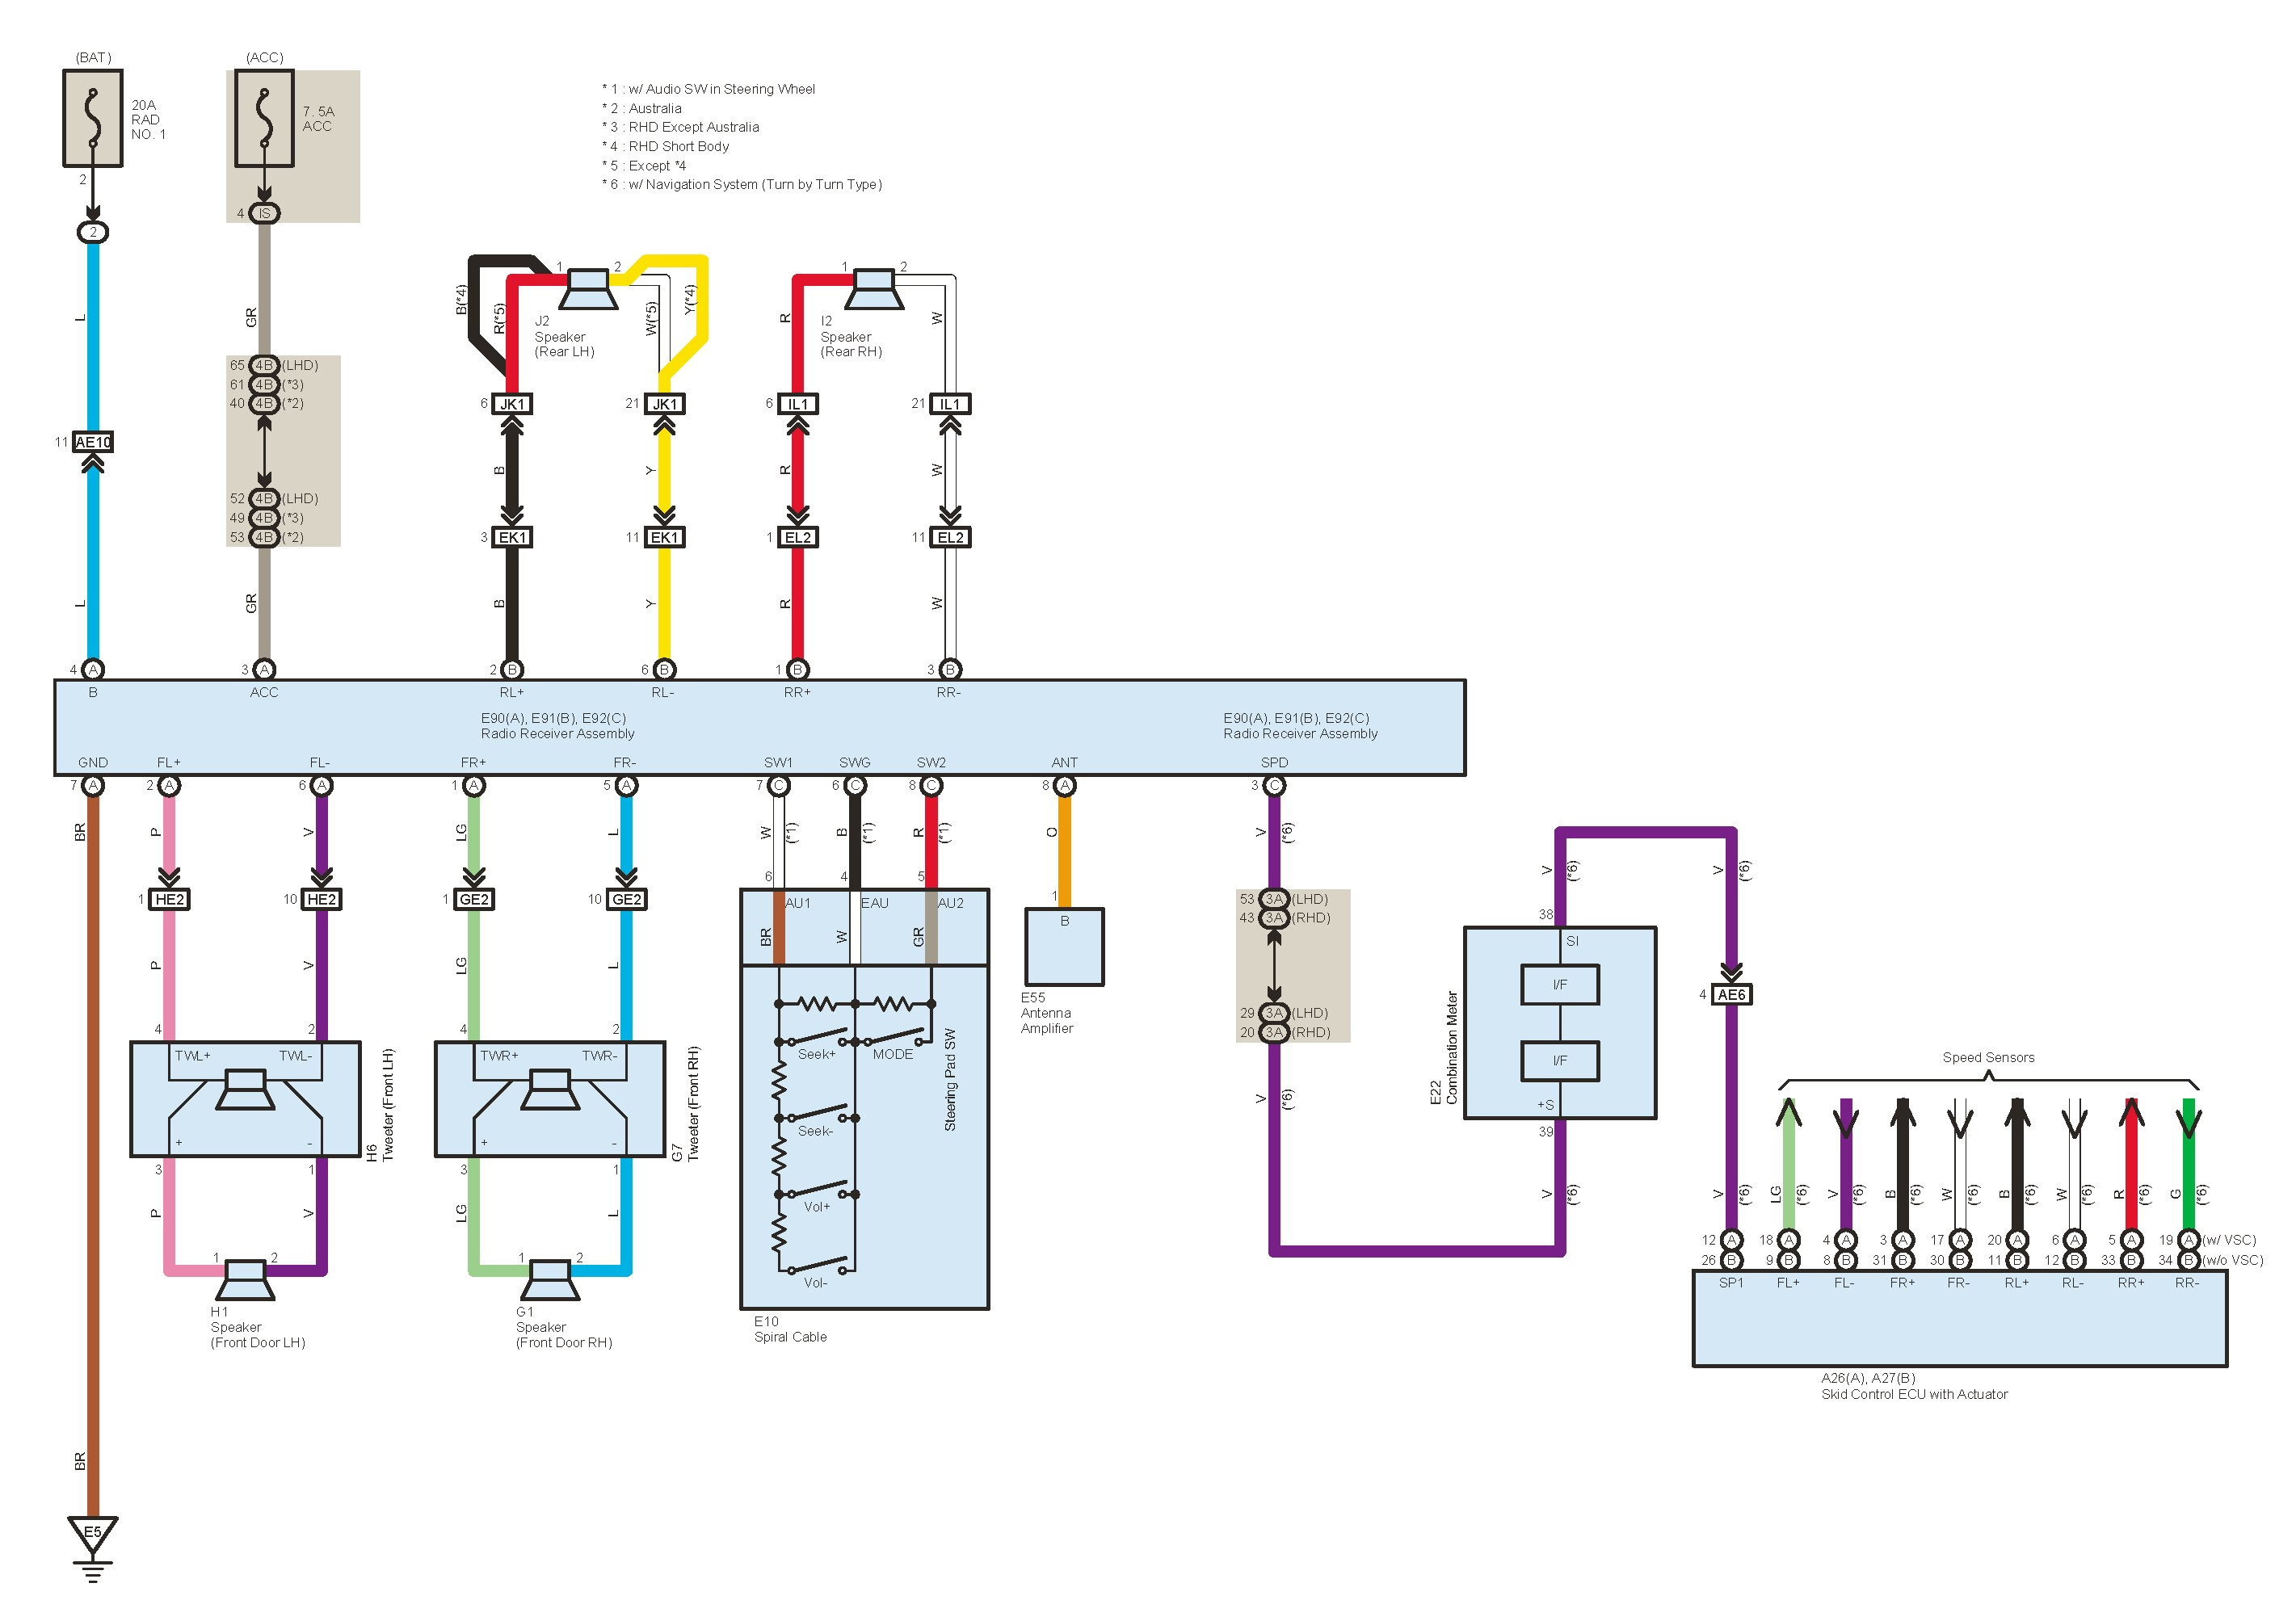 Highlander Stereo Wiring Diagram - Wiring Diagram